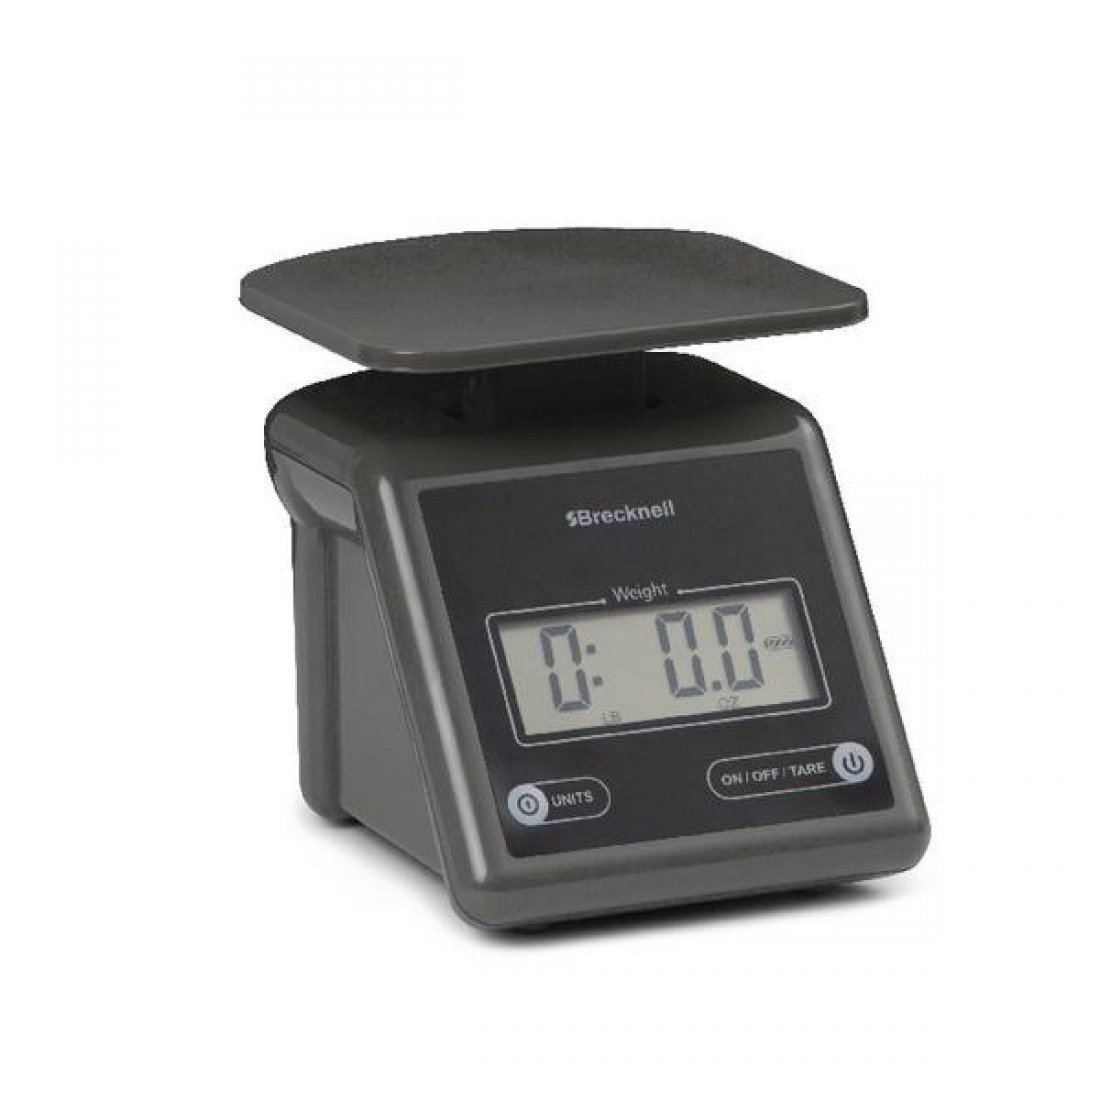 Brecknell Electronic Postal Scale, 7 Lbs Capacity, 6-4 5 x 5-3 5 Inches Platform, Gray (PS7), Electronic... by